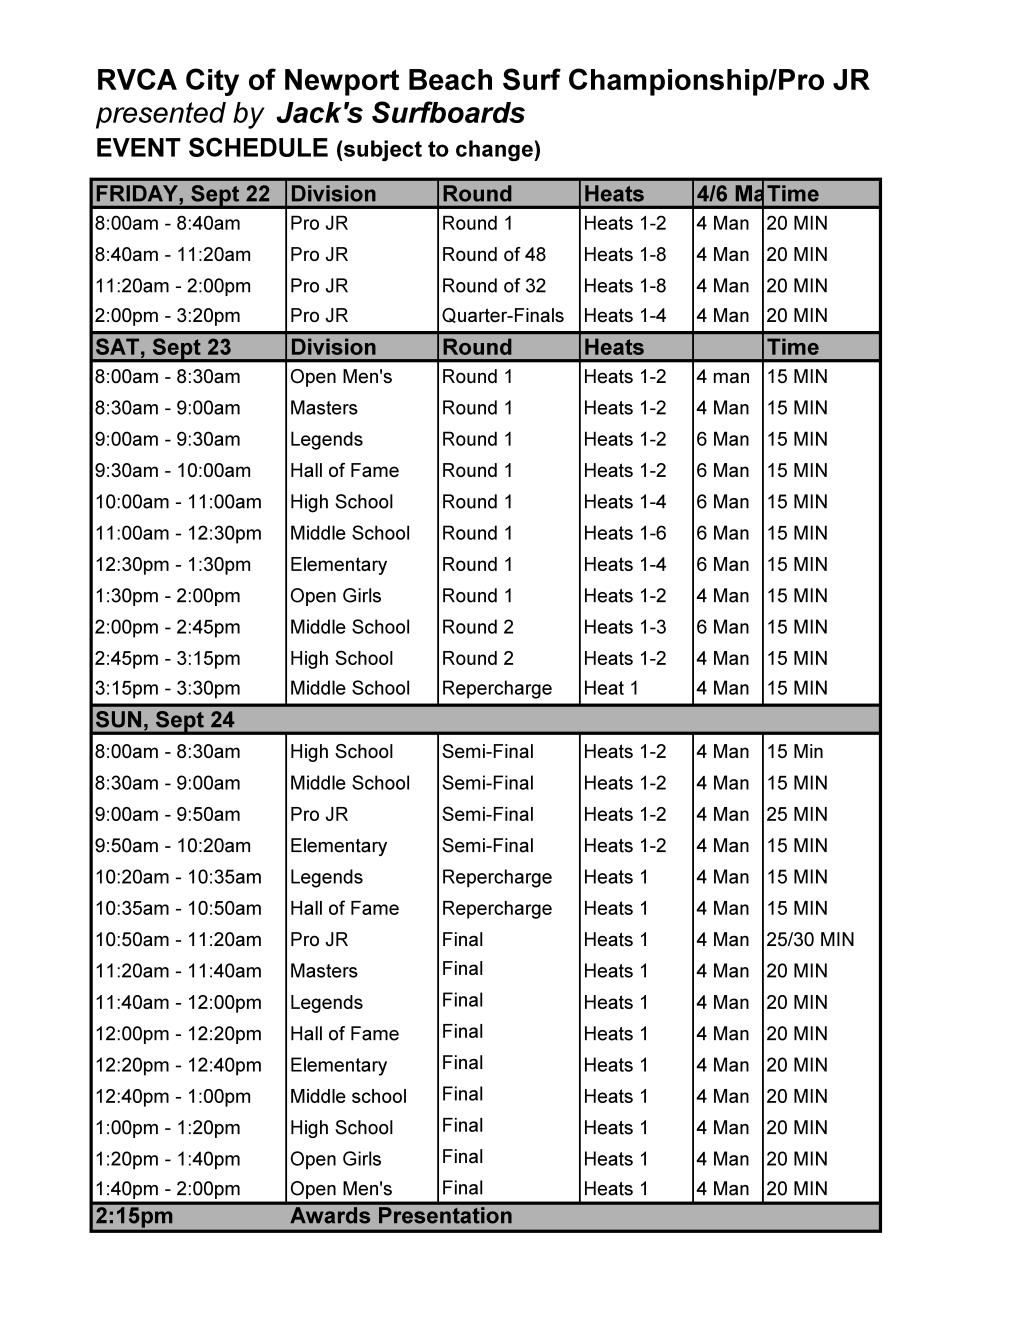 RVCA NB Draft Schedule